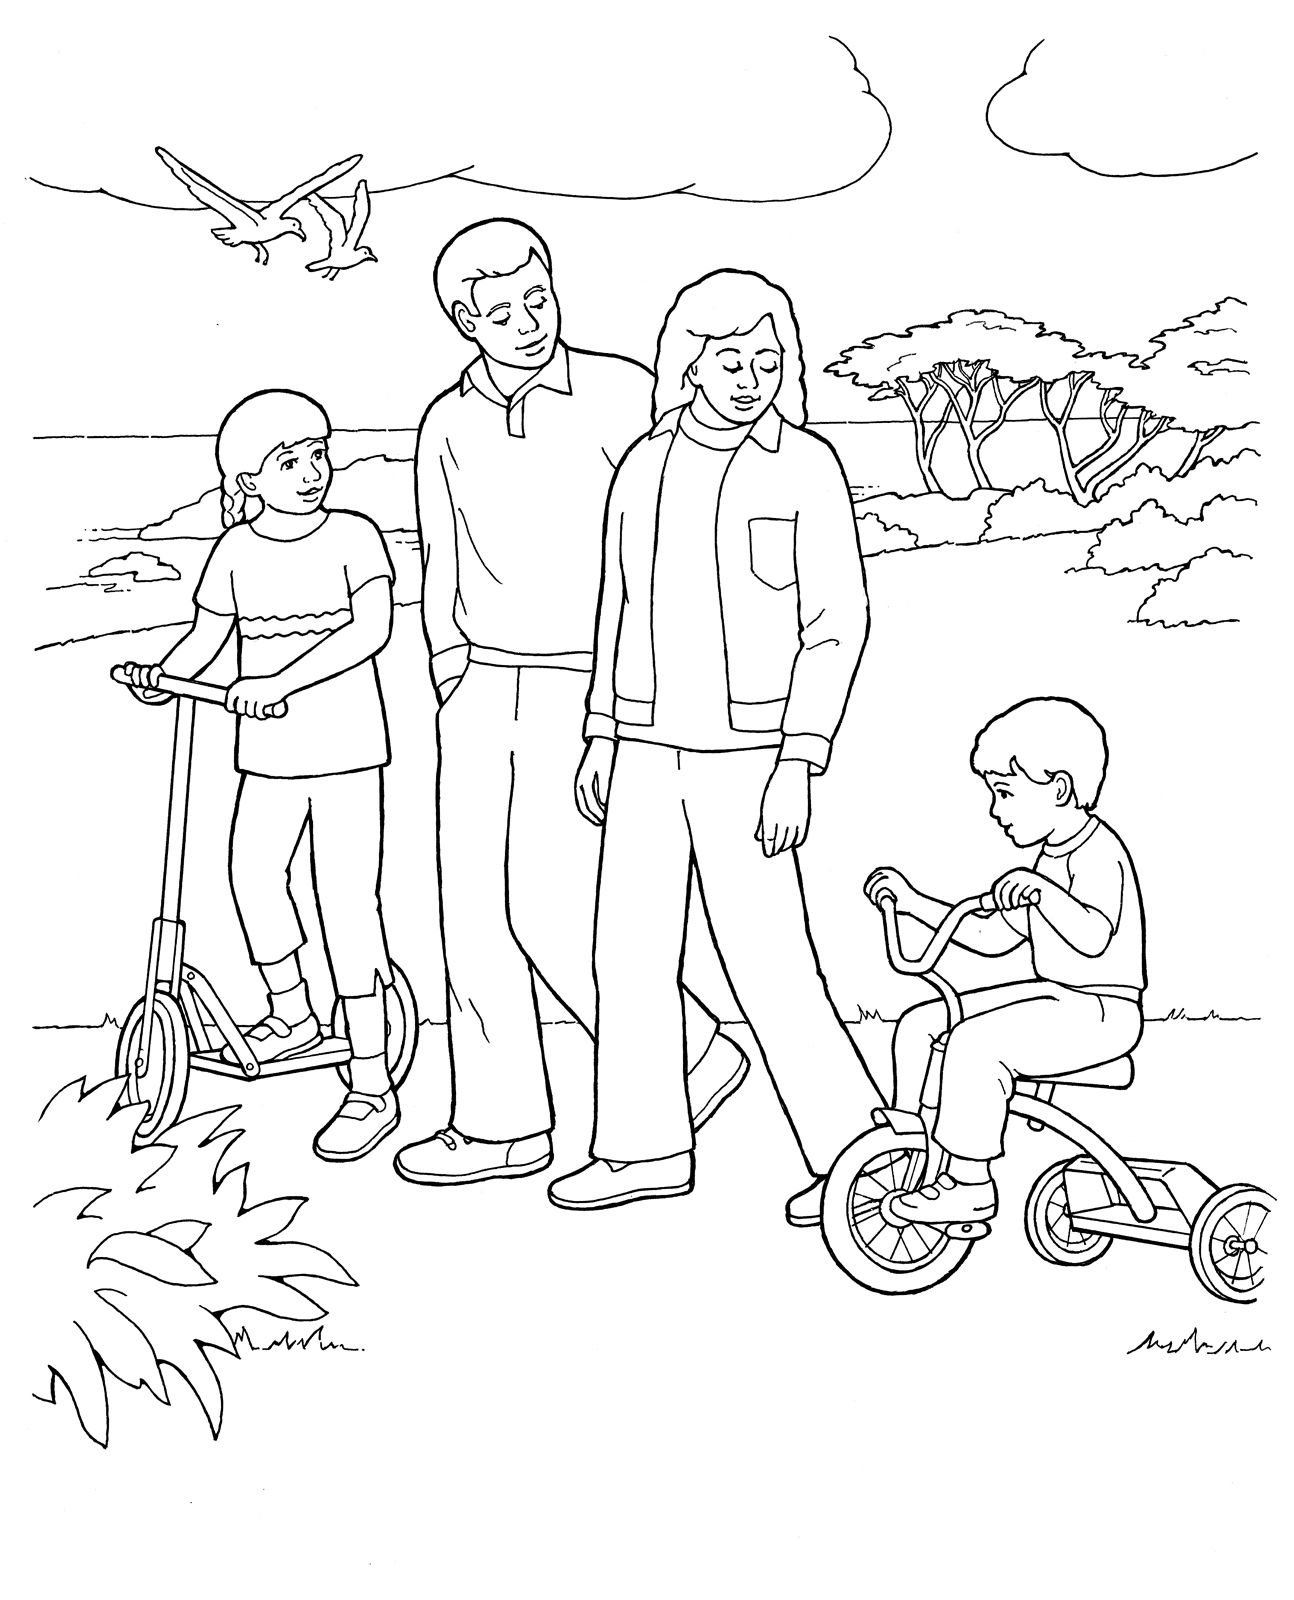 Primary coloring page. Family walking together #ldsprimary #mormons ...